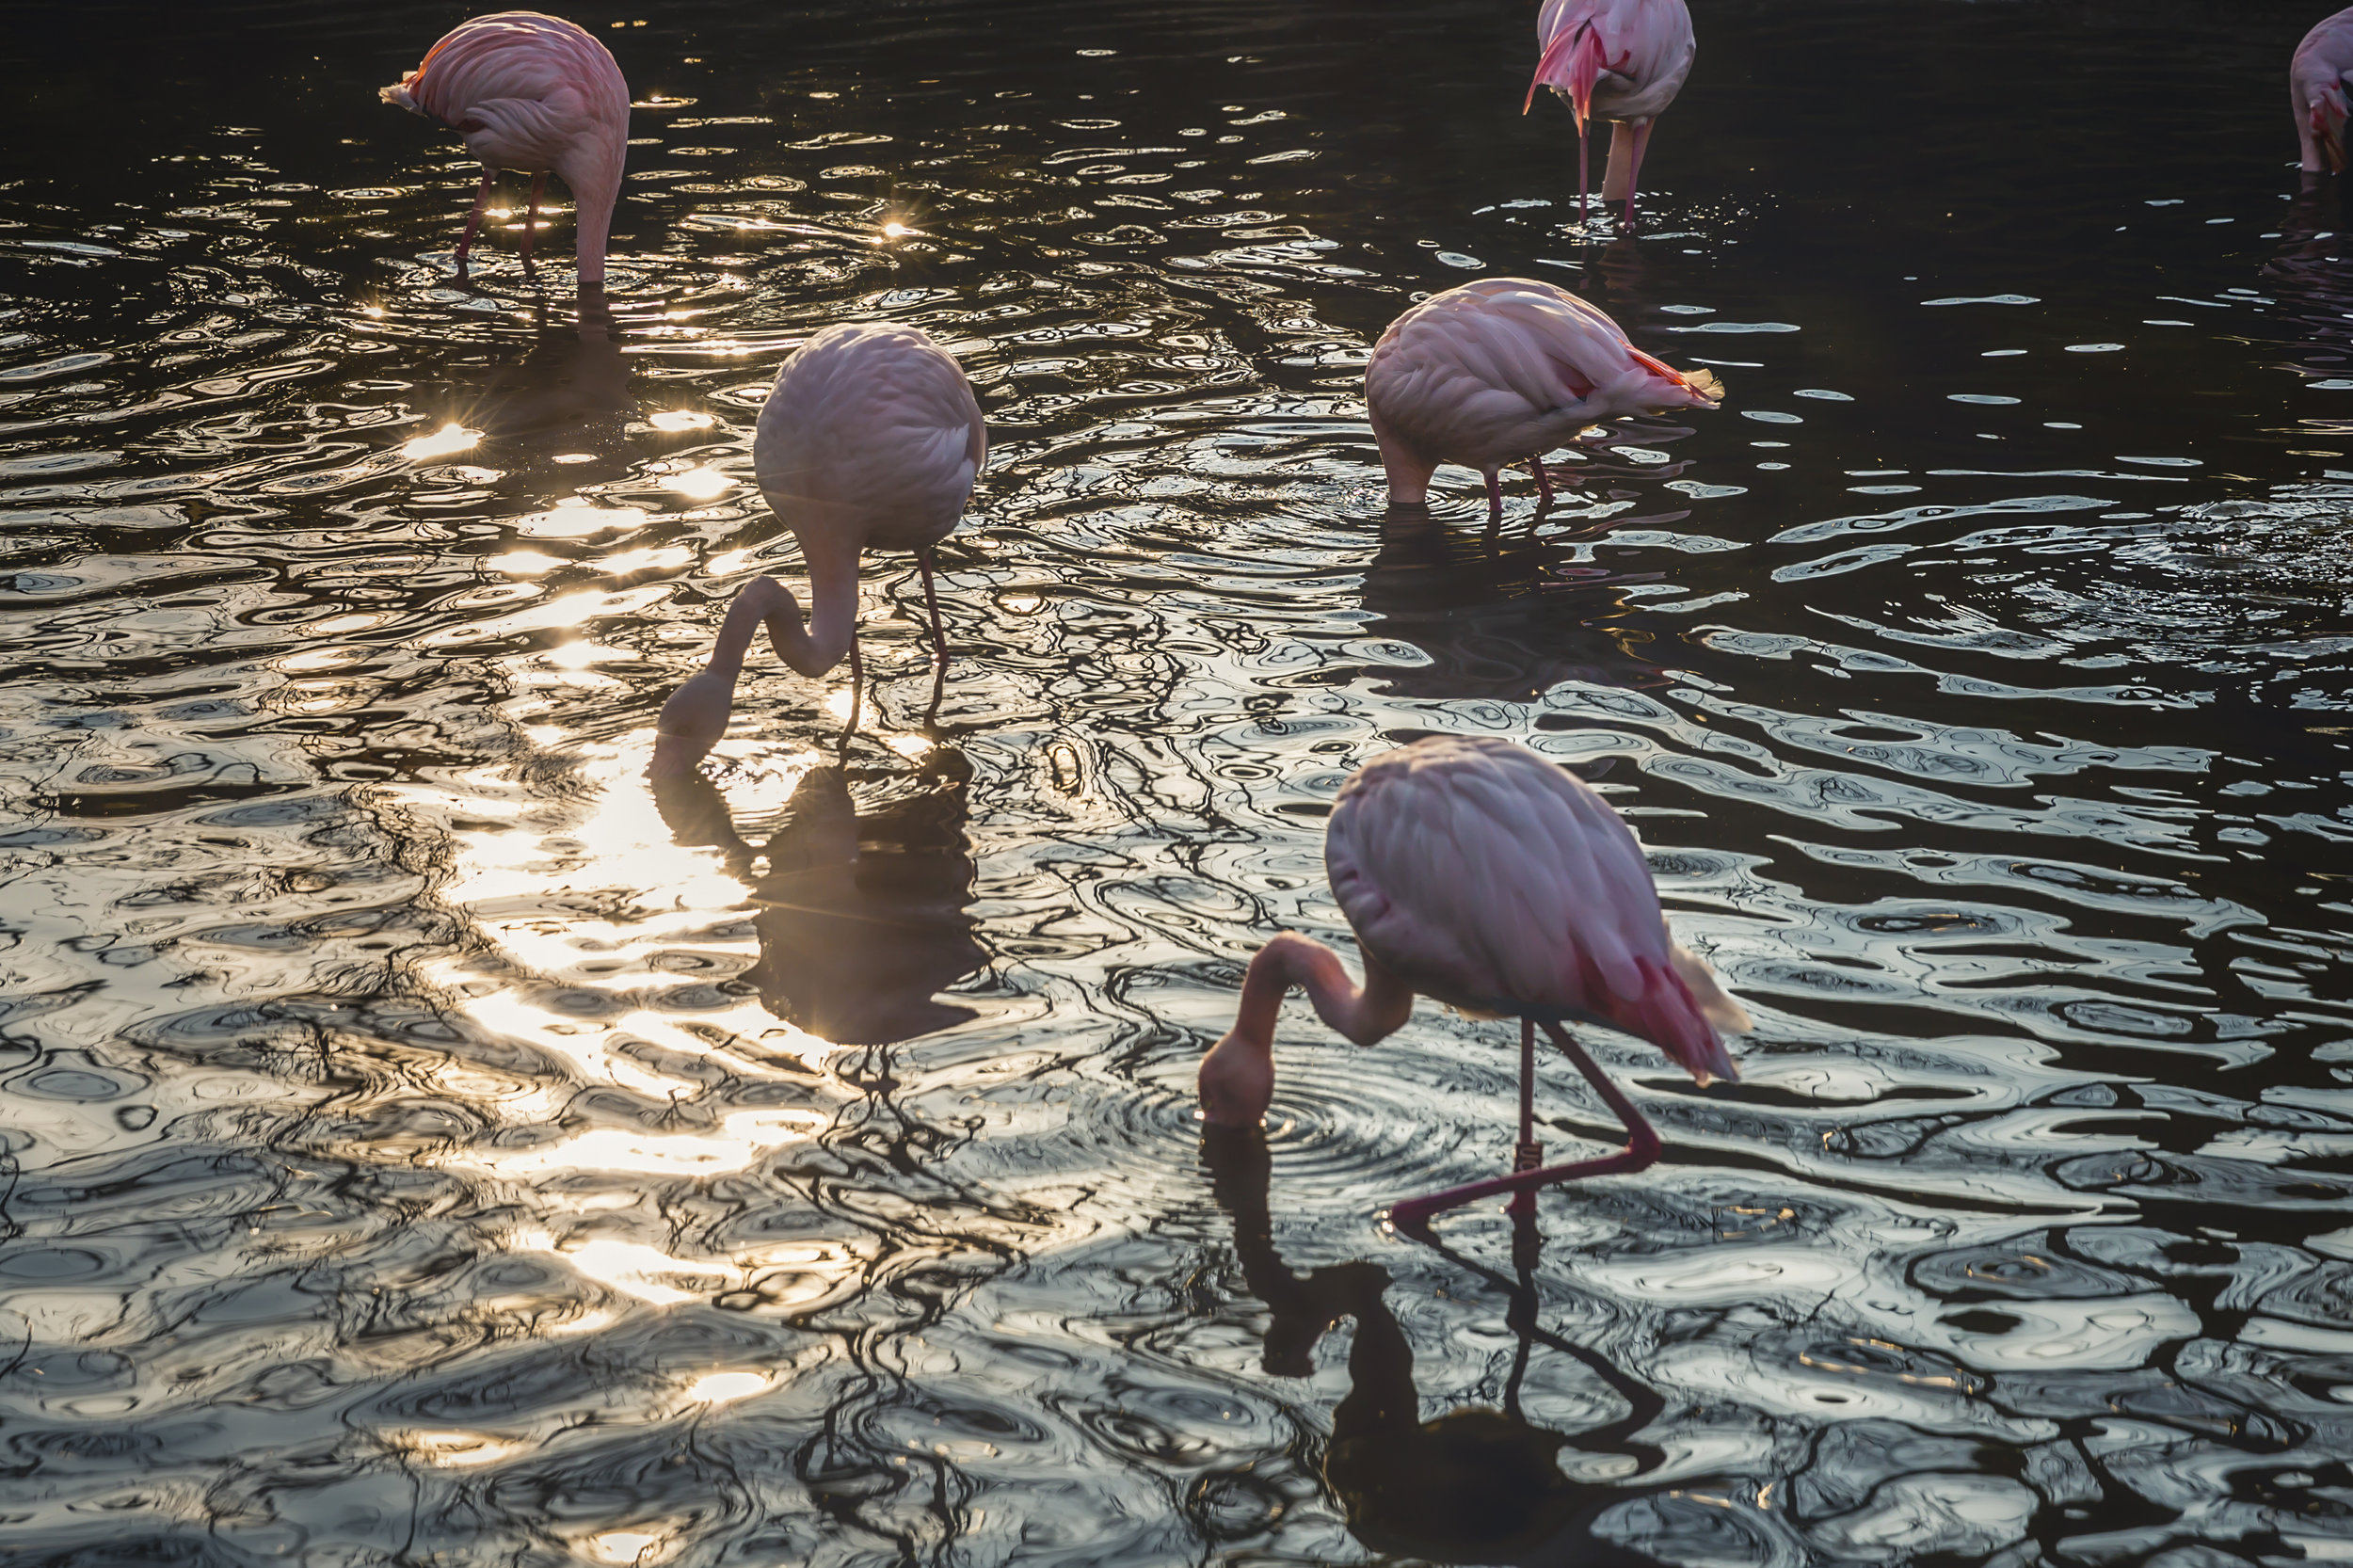 flamingos-drinking-water-together